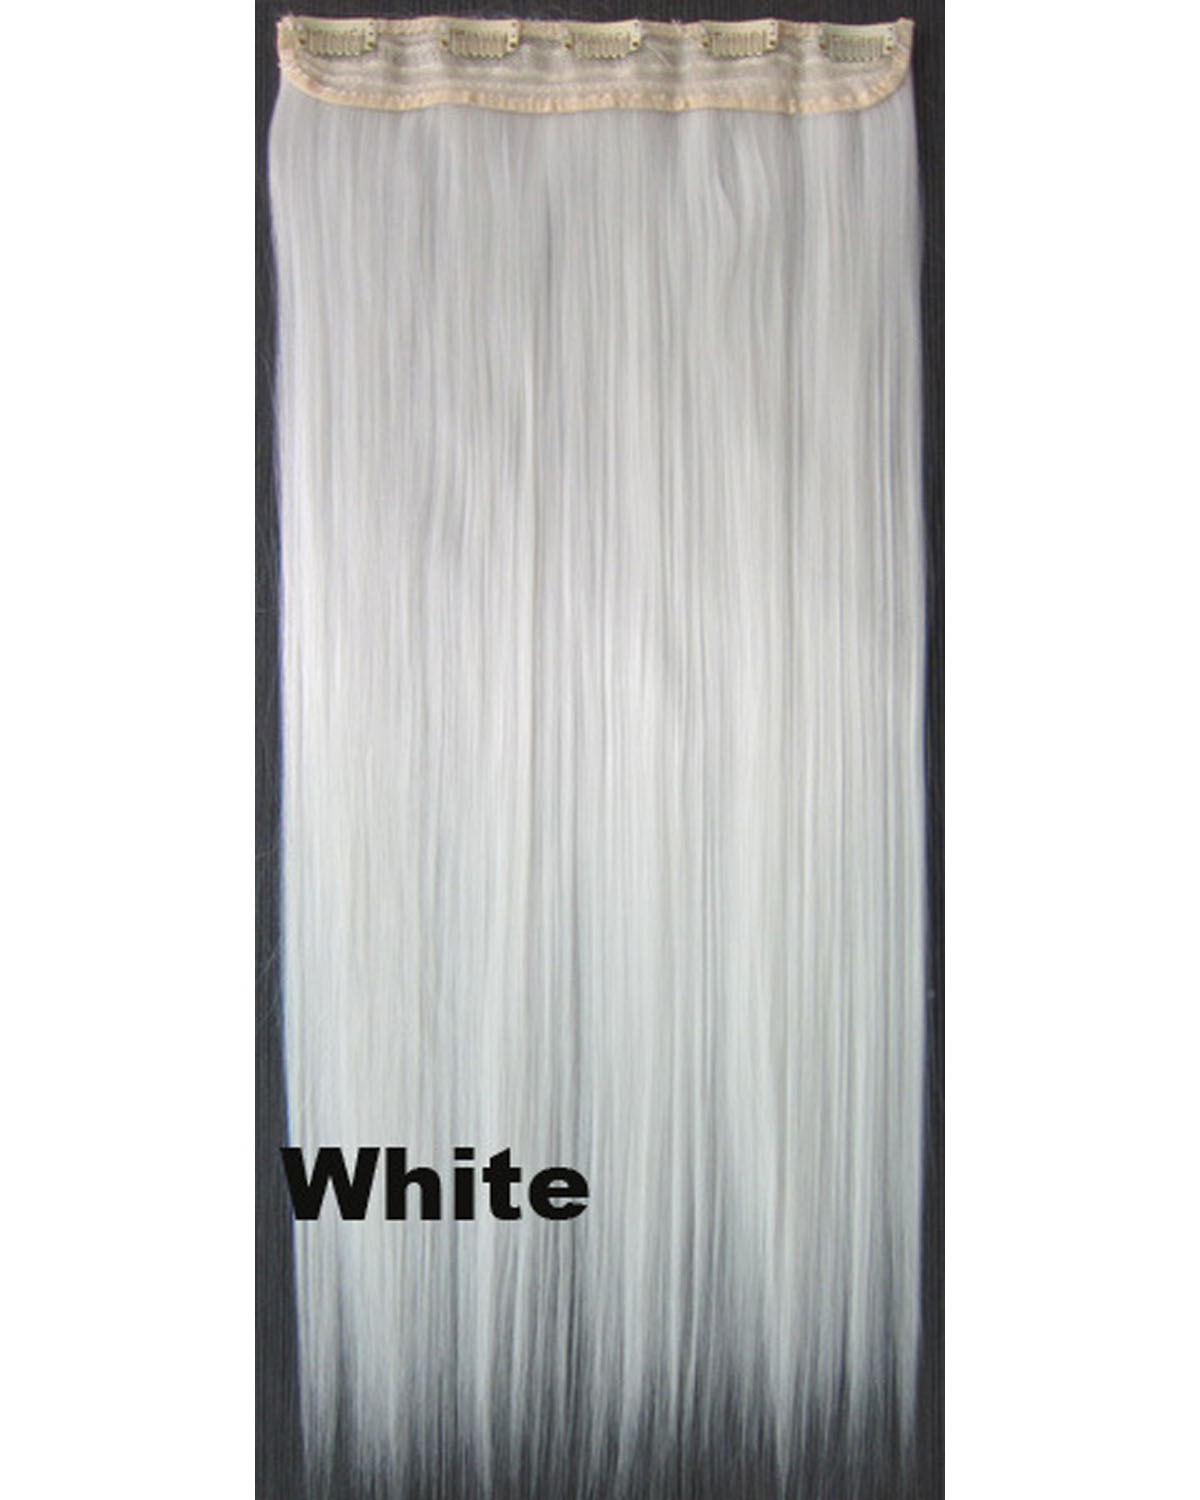 24 inch Straight  Long One Piece 5 Clips Clip in Synthetic Hair Extension White